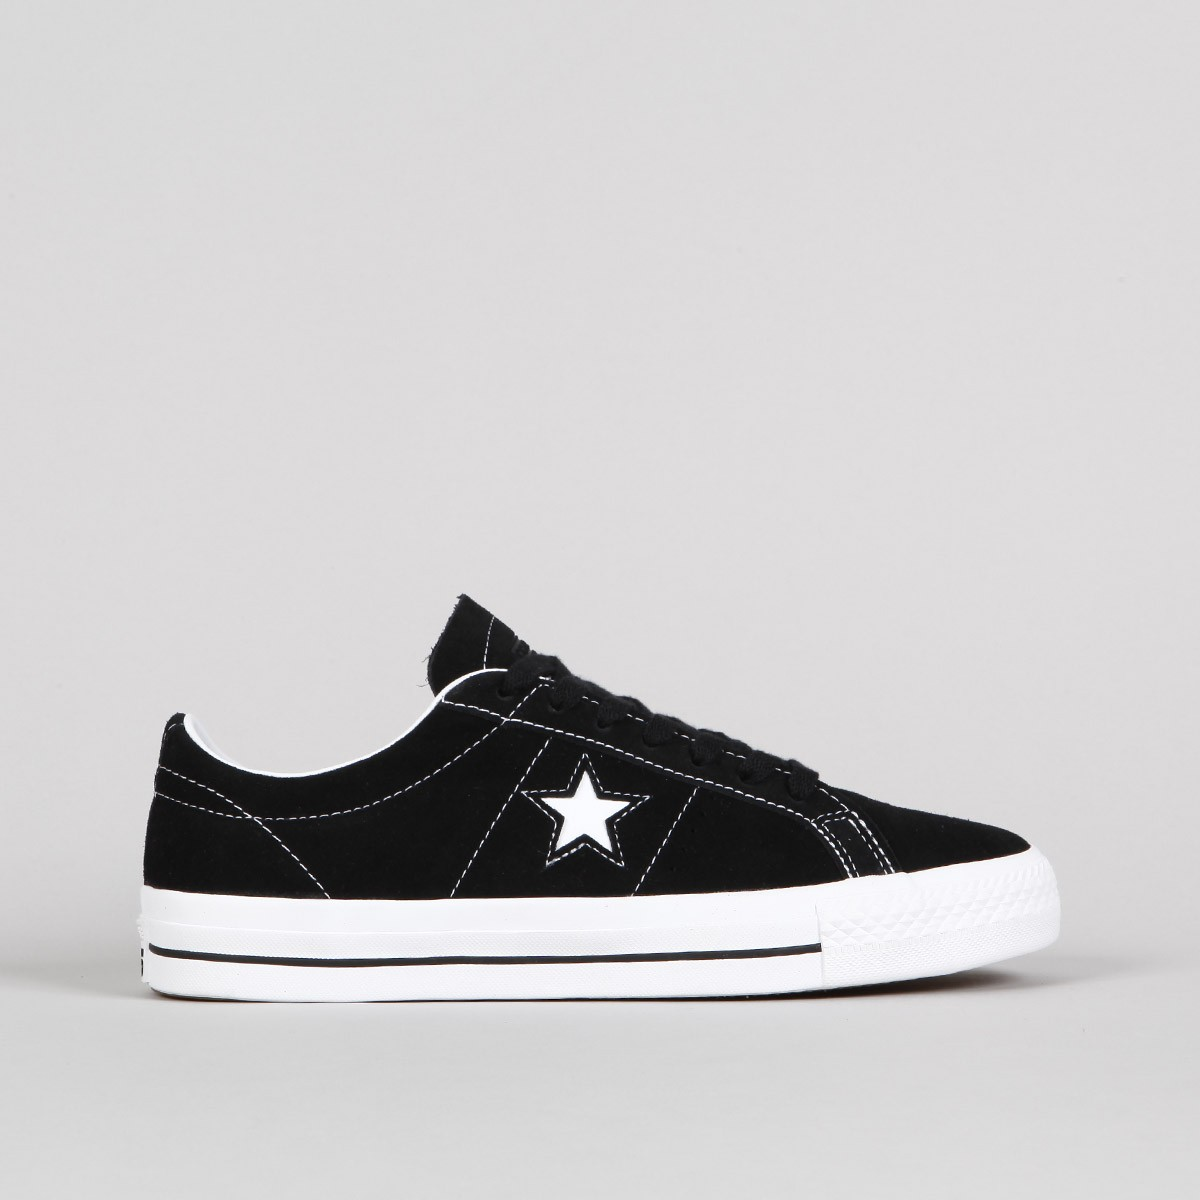 Converse One Star Trainers Field Surplus Black White - His